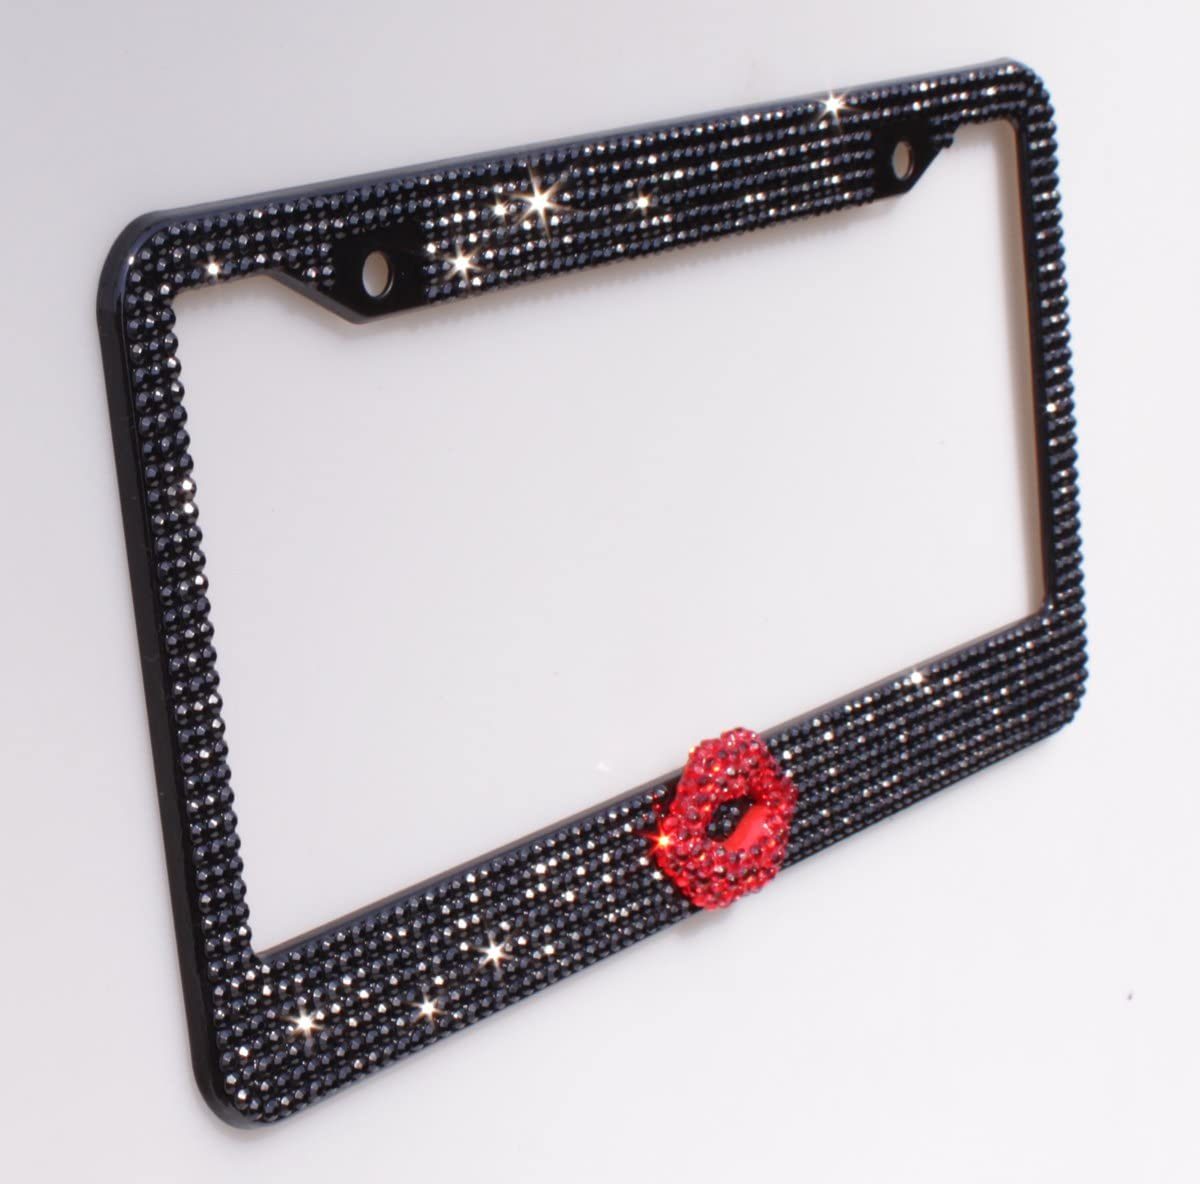 Follicomfy 2PCS Pure Handmade Bling Bling Rhinestones Stainless Steel Car License Plate Frame with Screws Caps,Purple